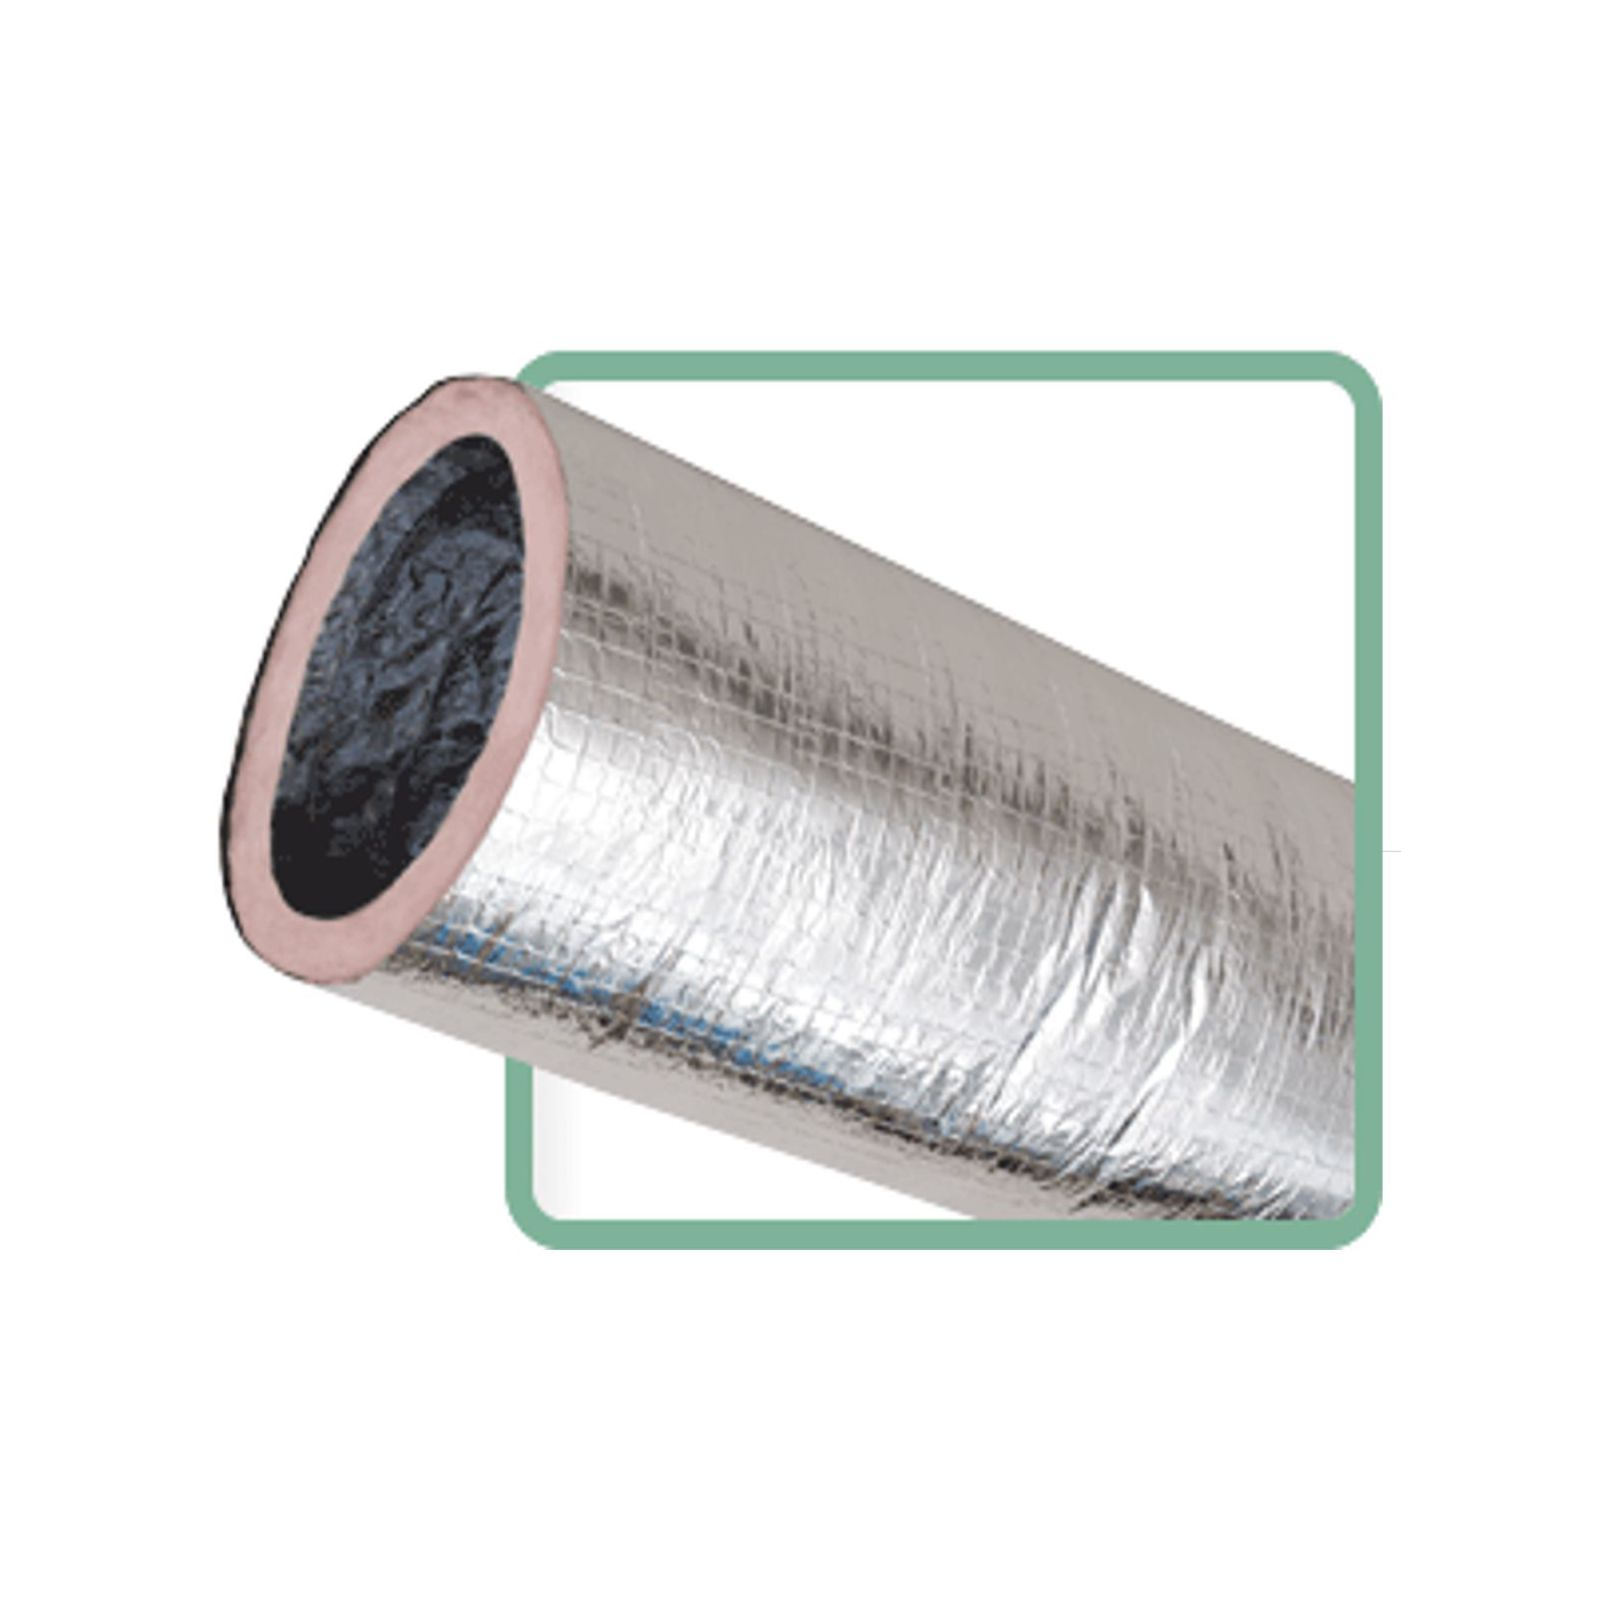 "Thermaflex 056305000004 - KM Silver Flex-Vent Insulated Flexible Air Duct, R8, 5"" X 50' Box"